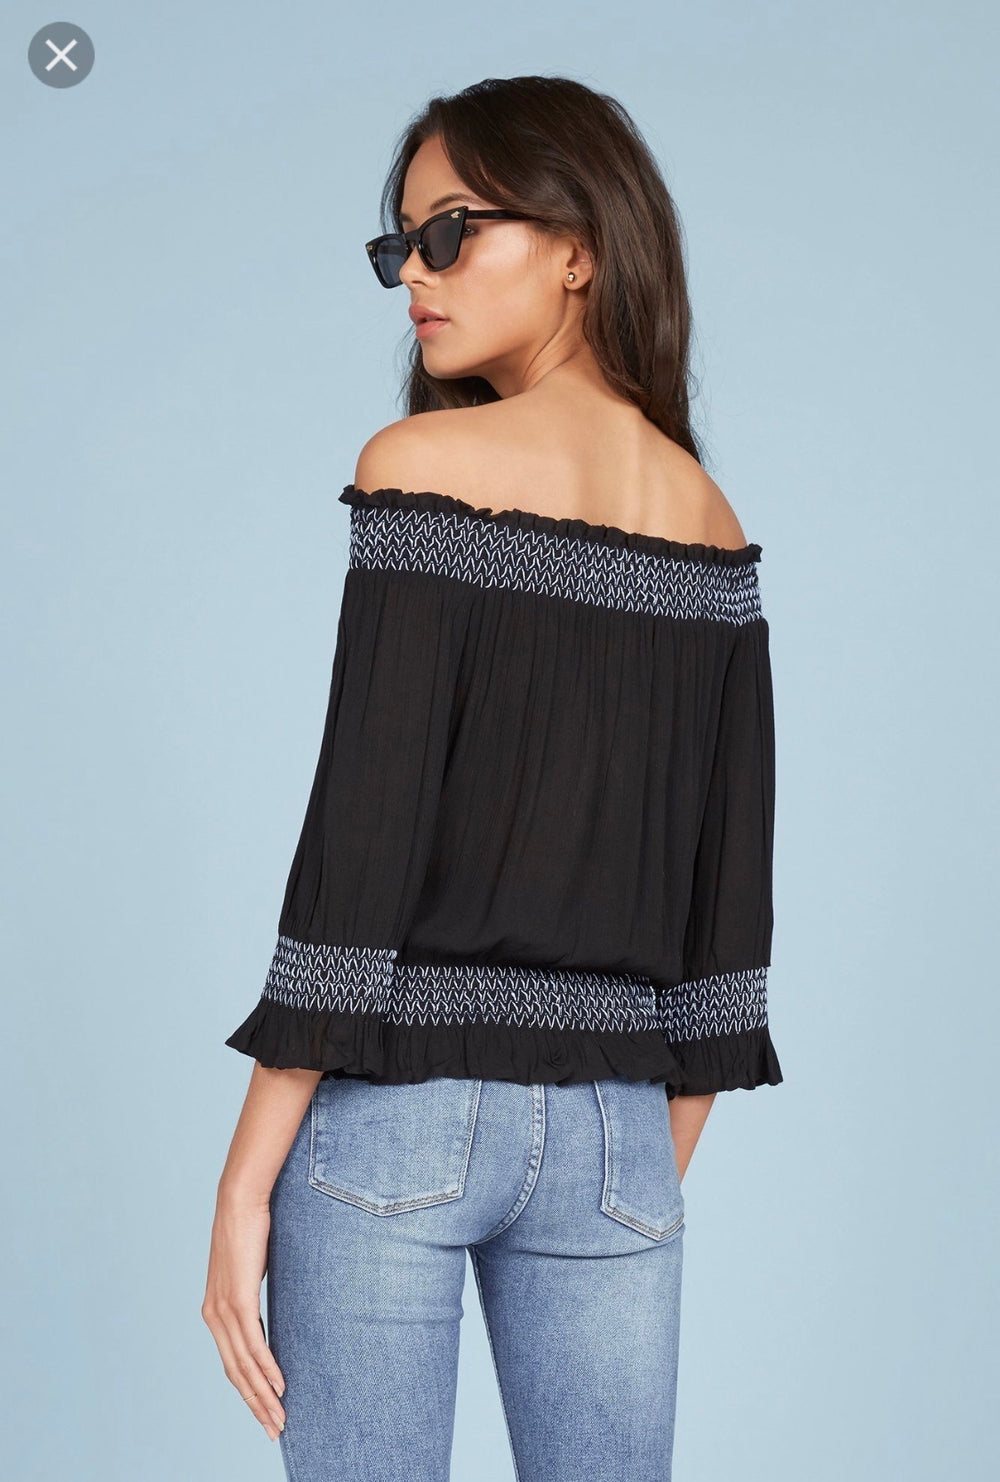 Willow & Clay Off Shoulder Embroidered Top